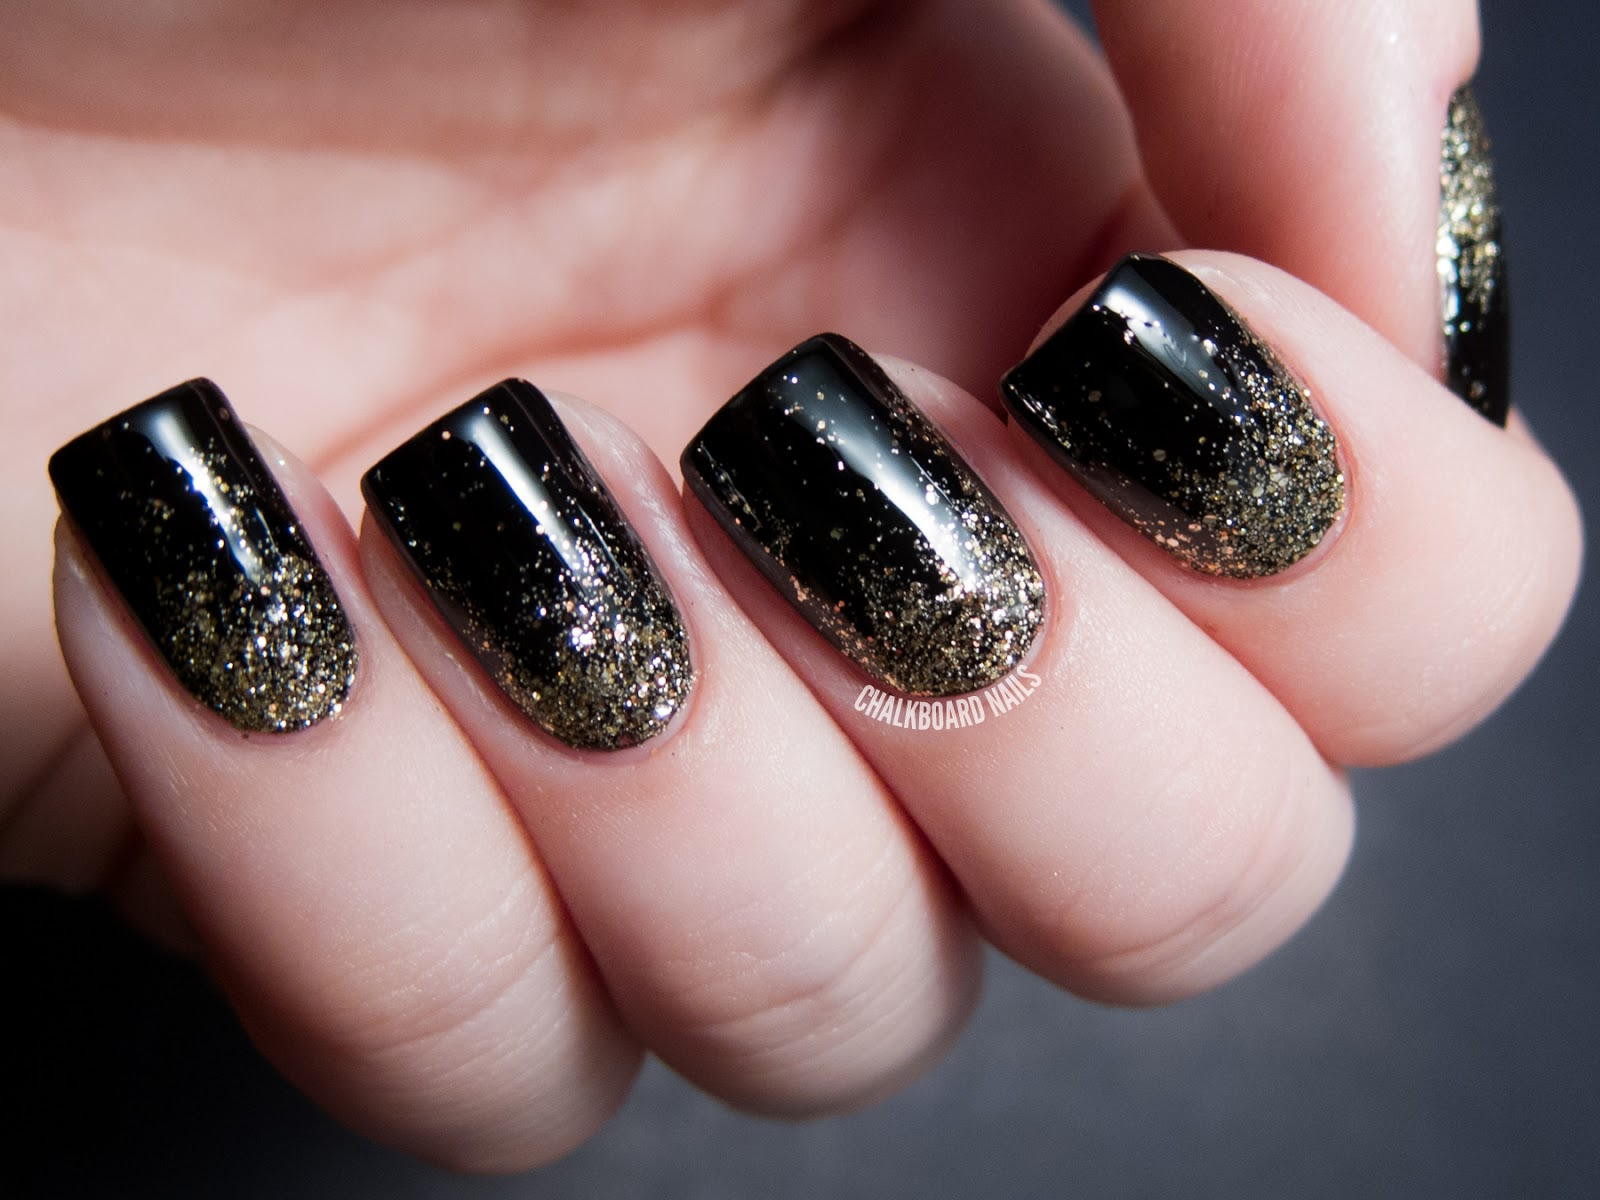 : Black and Gold Nail Art Ideas | Chalkboard Nails | Nail Art Blog